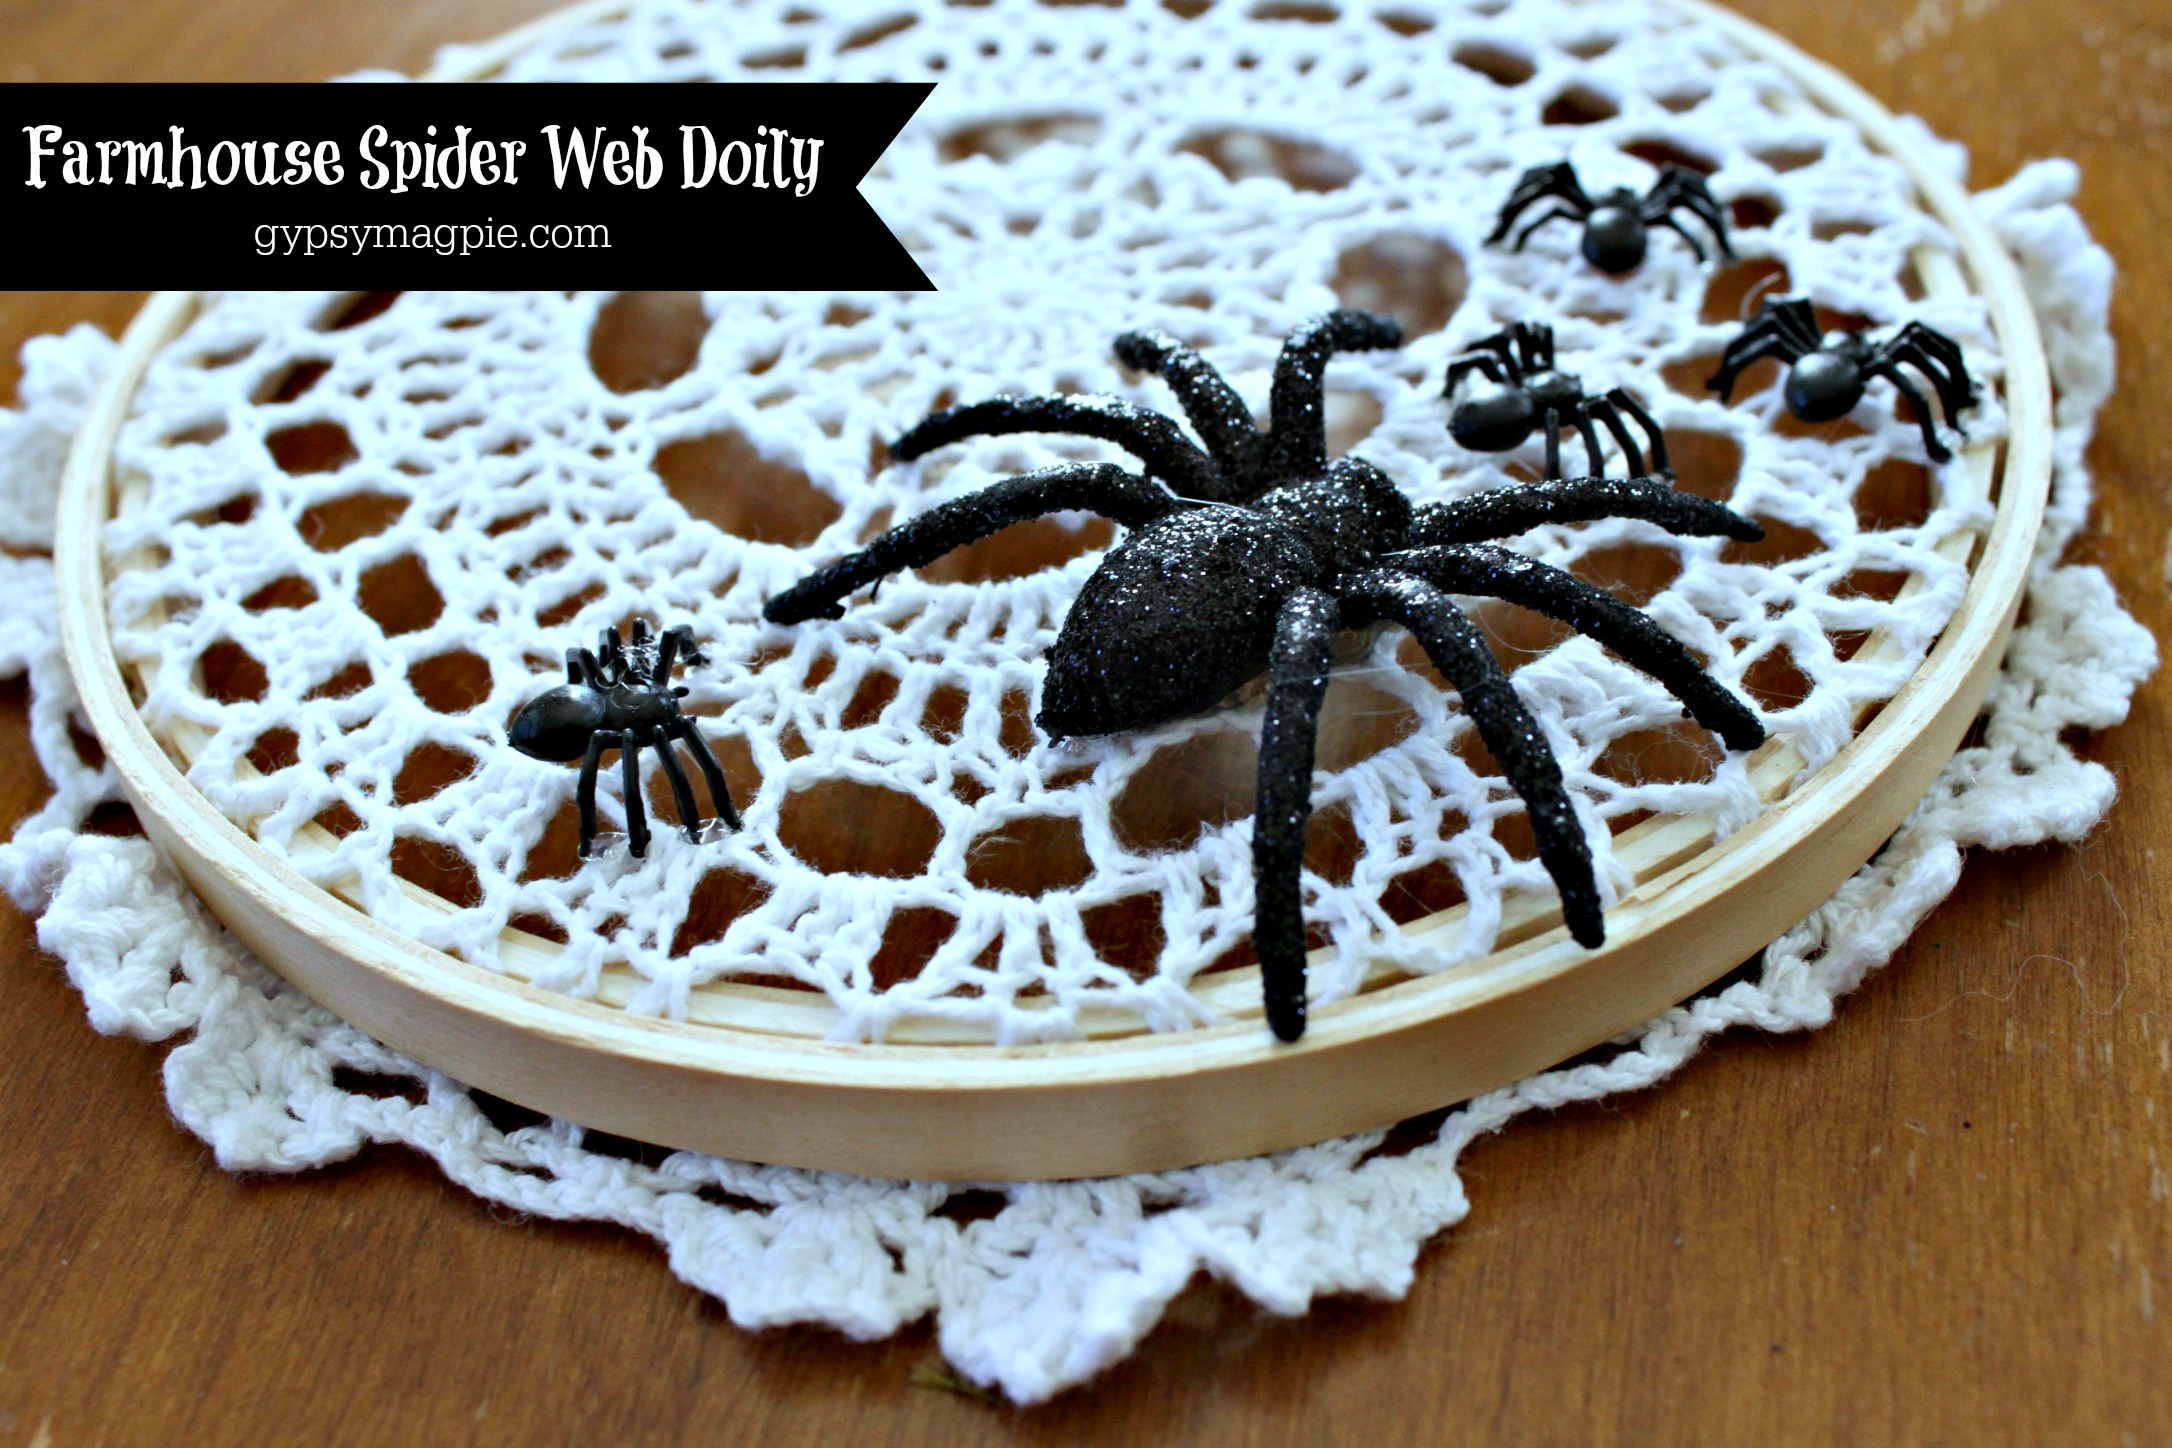 Farmhouse spider web doily | Gypsy Magpie